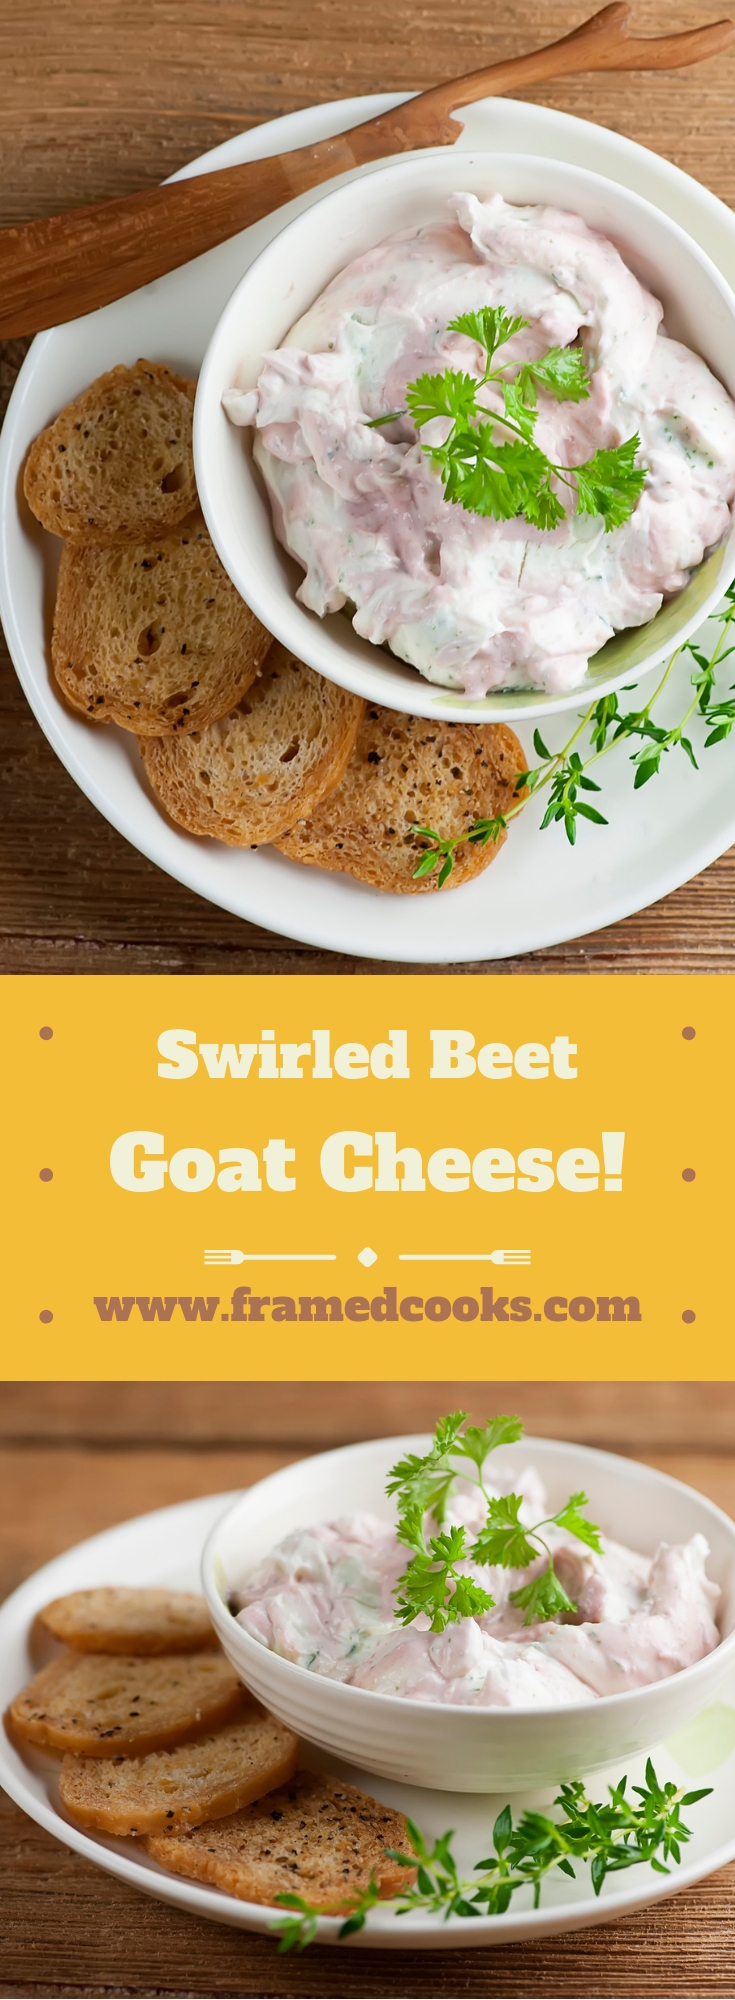 This easy recipe for swirled beet goat cheese makes a festive appetizer that is perfect for the holidays, your next dinner party, or a simple snack!